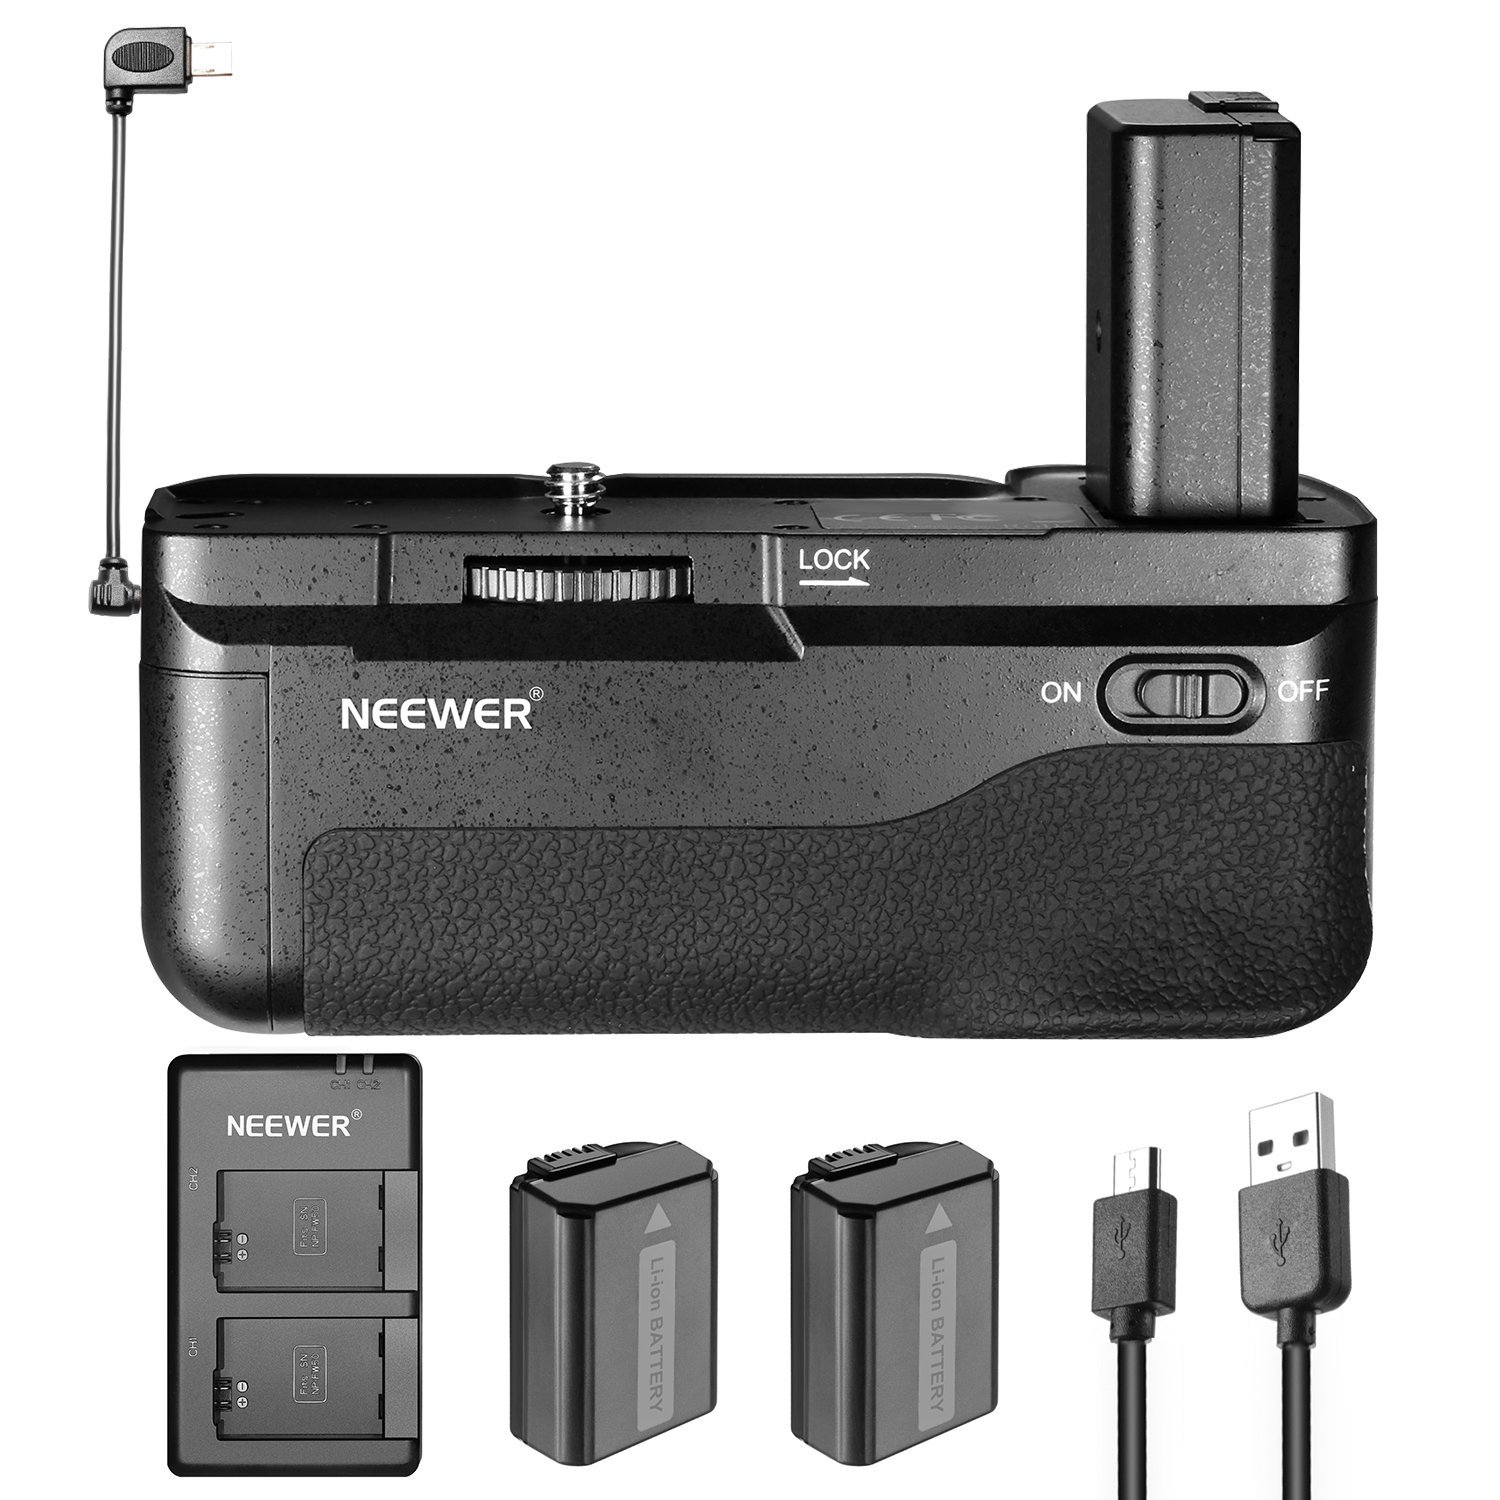 Neewer Vertical Battery Grip with Shutter Release Button for Sony A6300 Camera with 2 Pieces 1100mAh Replacement Li-ion Battery for Sony FW50 and 5V/2.1A USB Input Dual Charger Kit